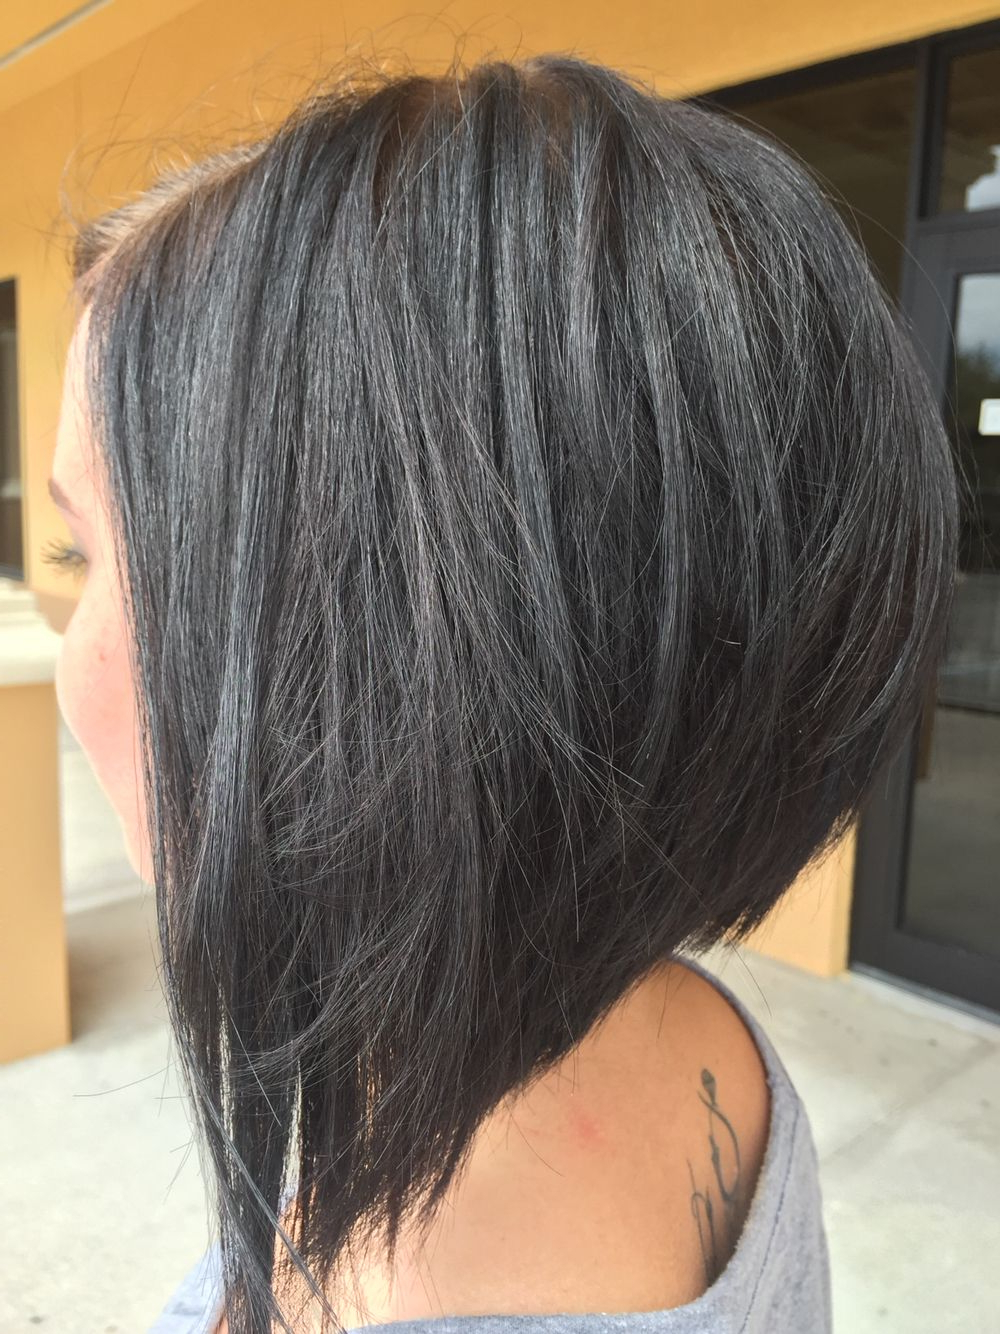 Pin On Hair With Short Sliced Inverted Bob Hairstyles (View 17 of 20)